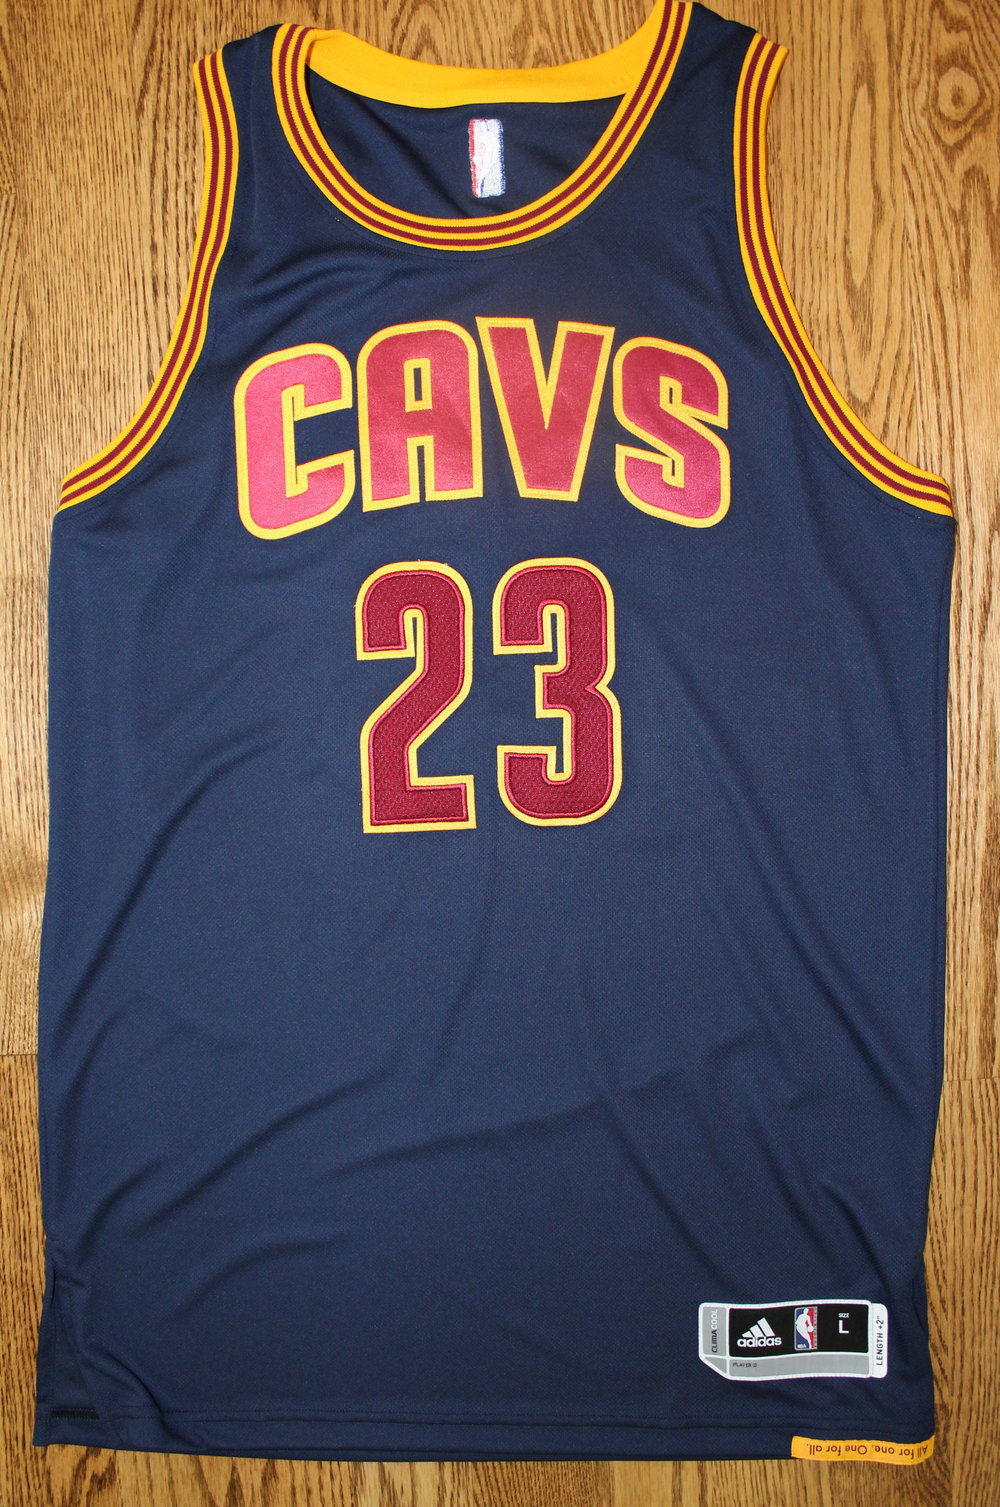 Cleveland Cavalier's LeBron James Autographed Jersey with Certificate of Authenticity